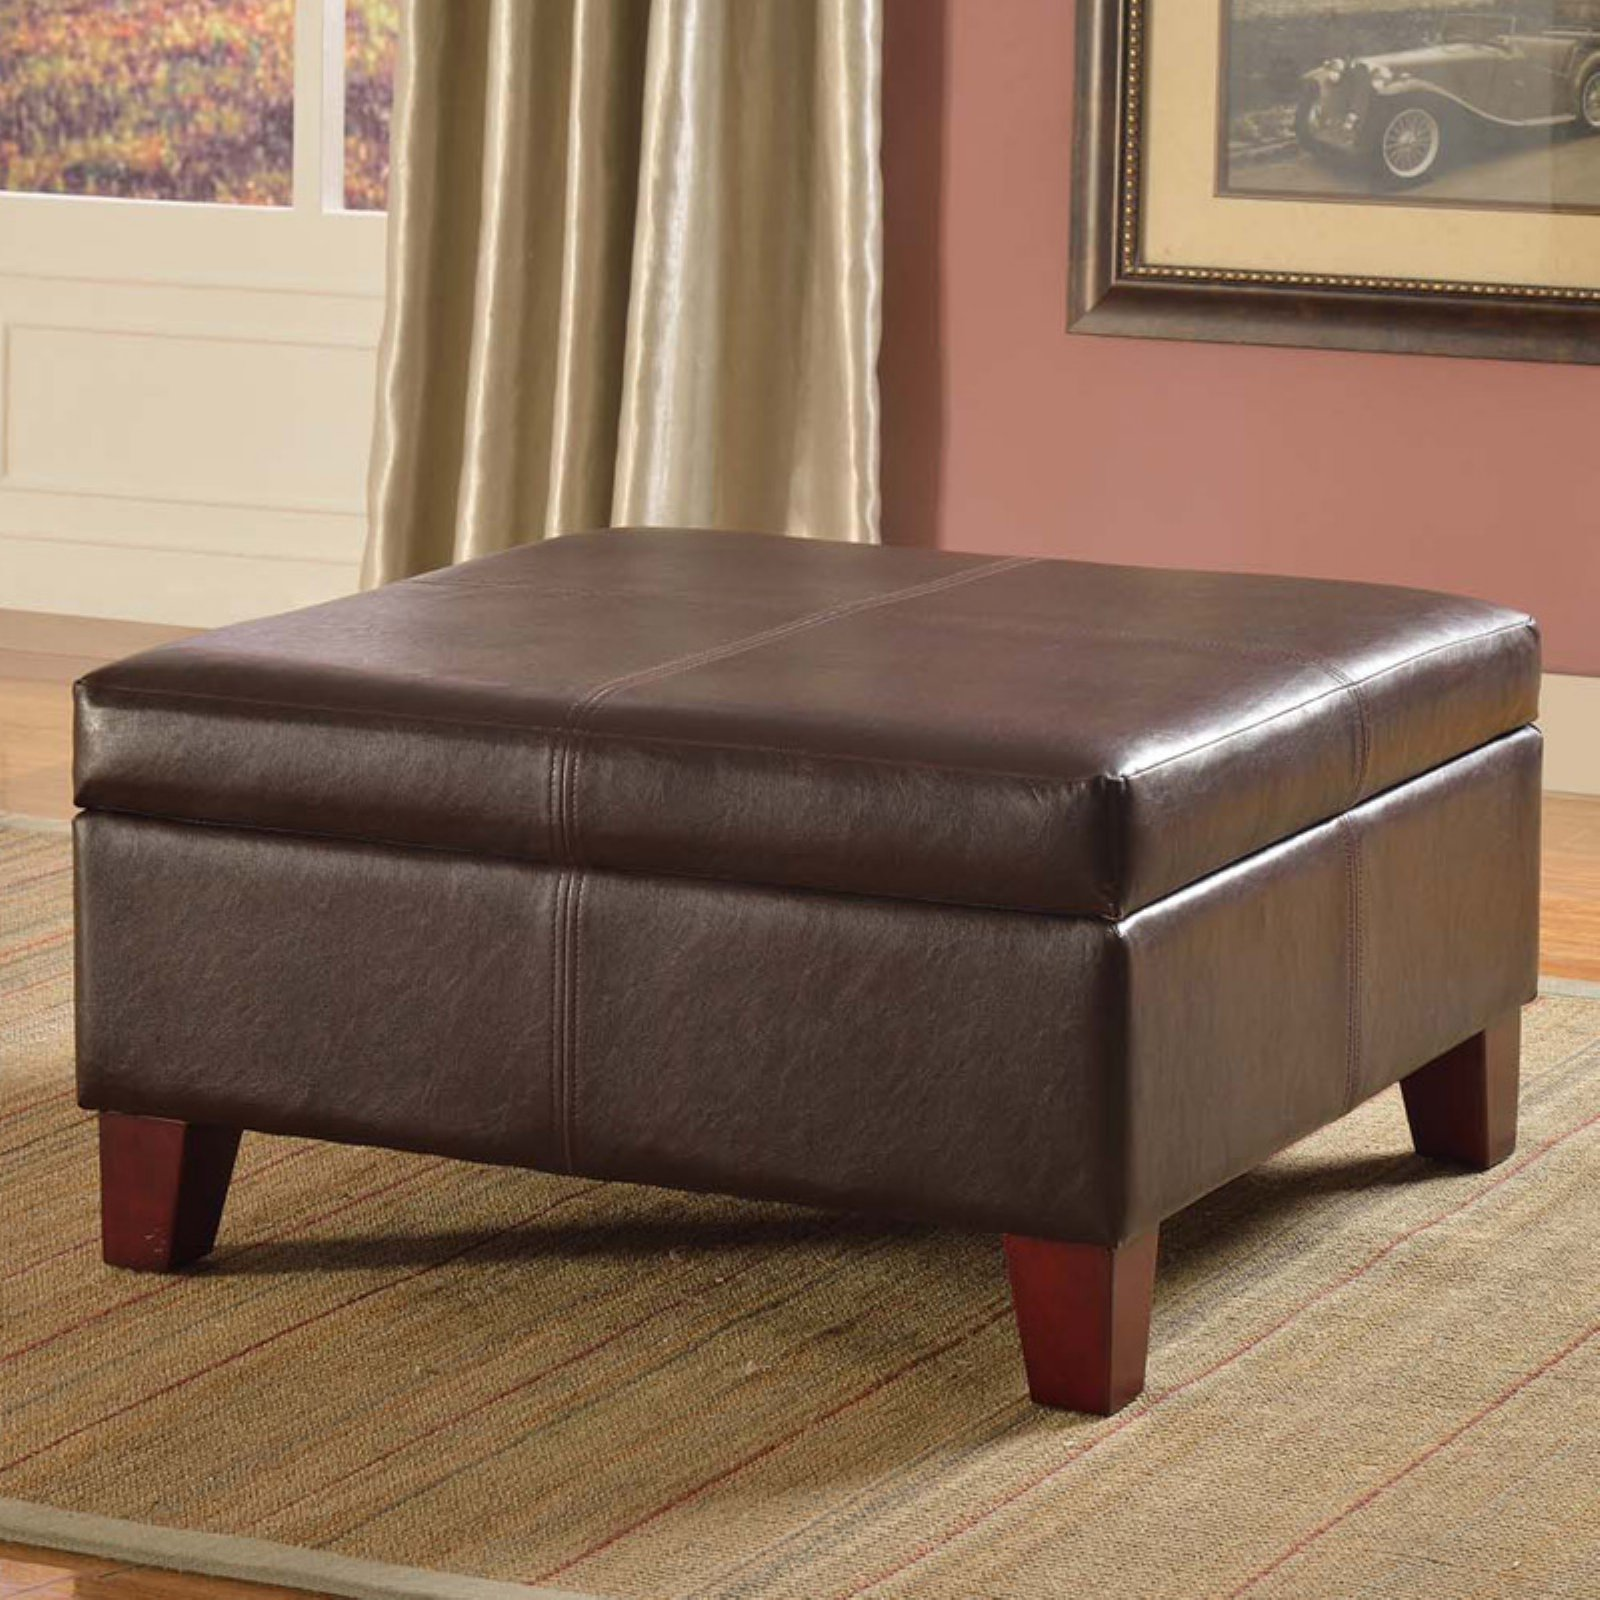 Kinfine USA Luxury Large Faux Leather Storage Ottoman